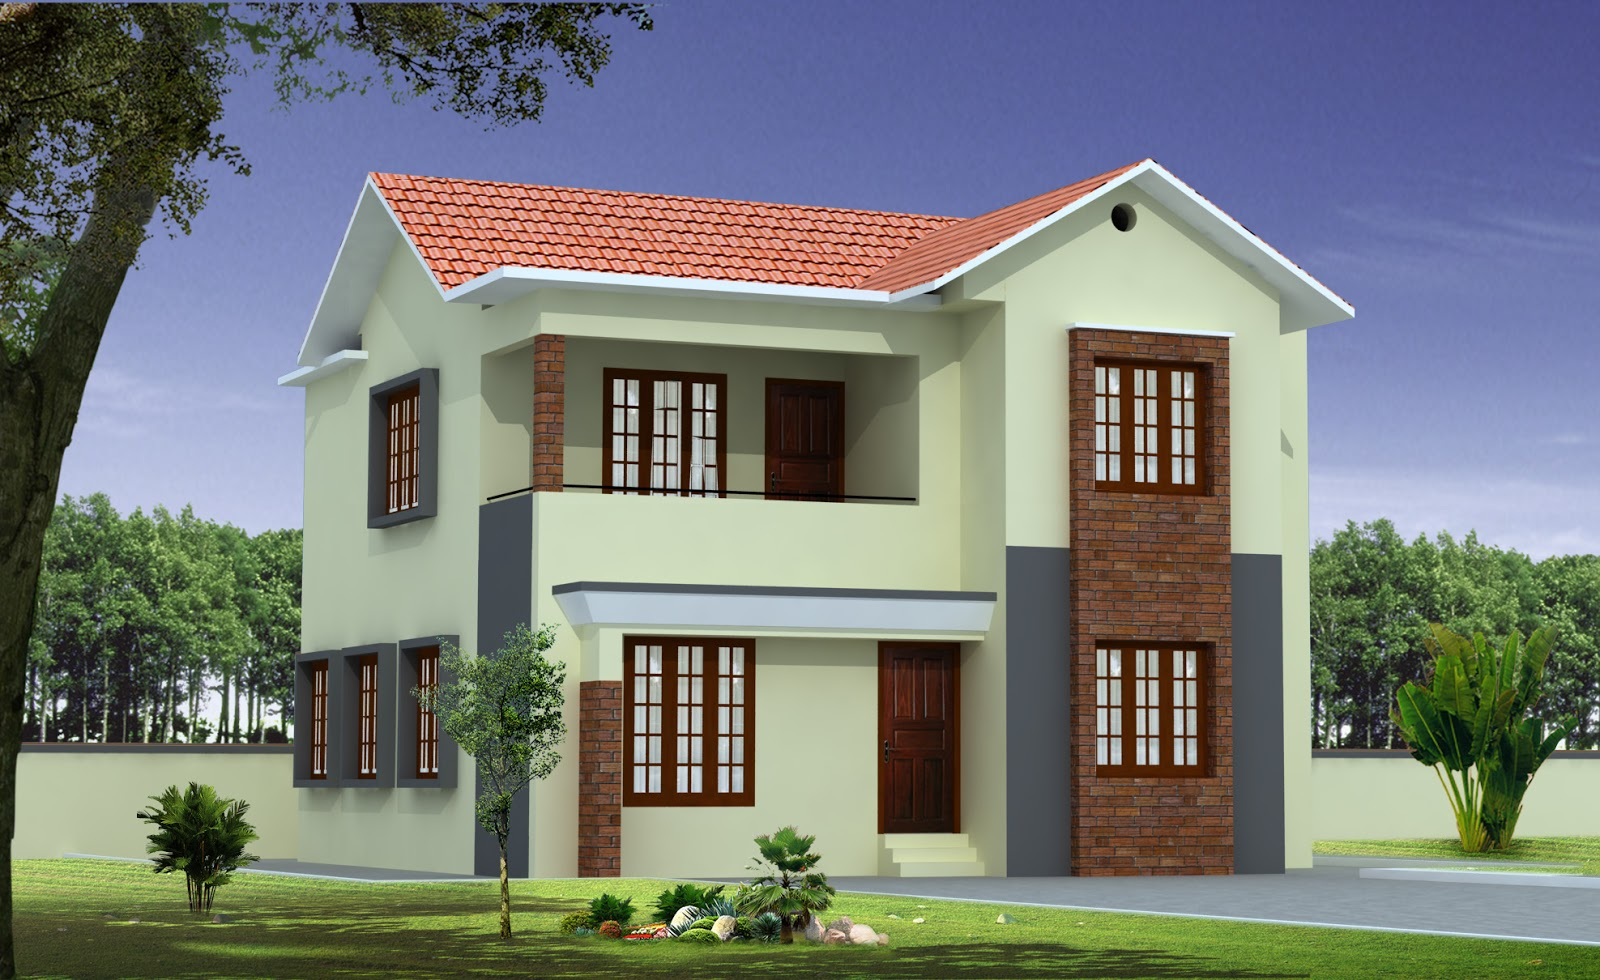 Build a building latest home designs Home design